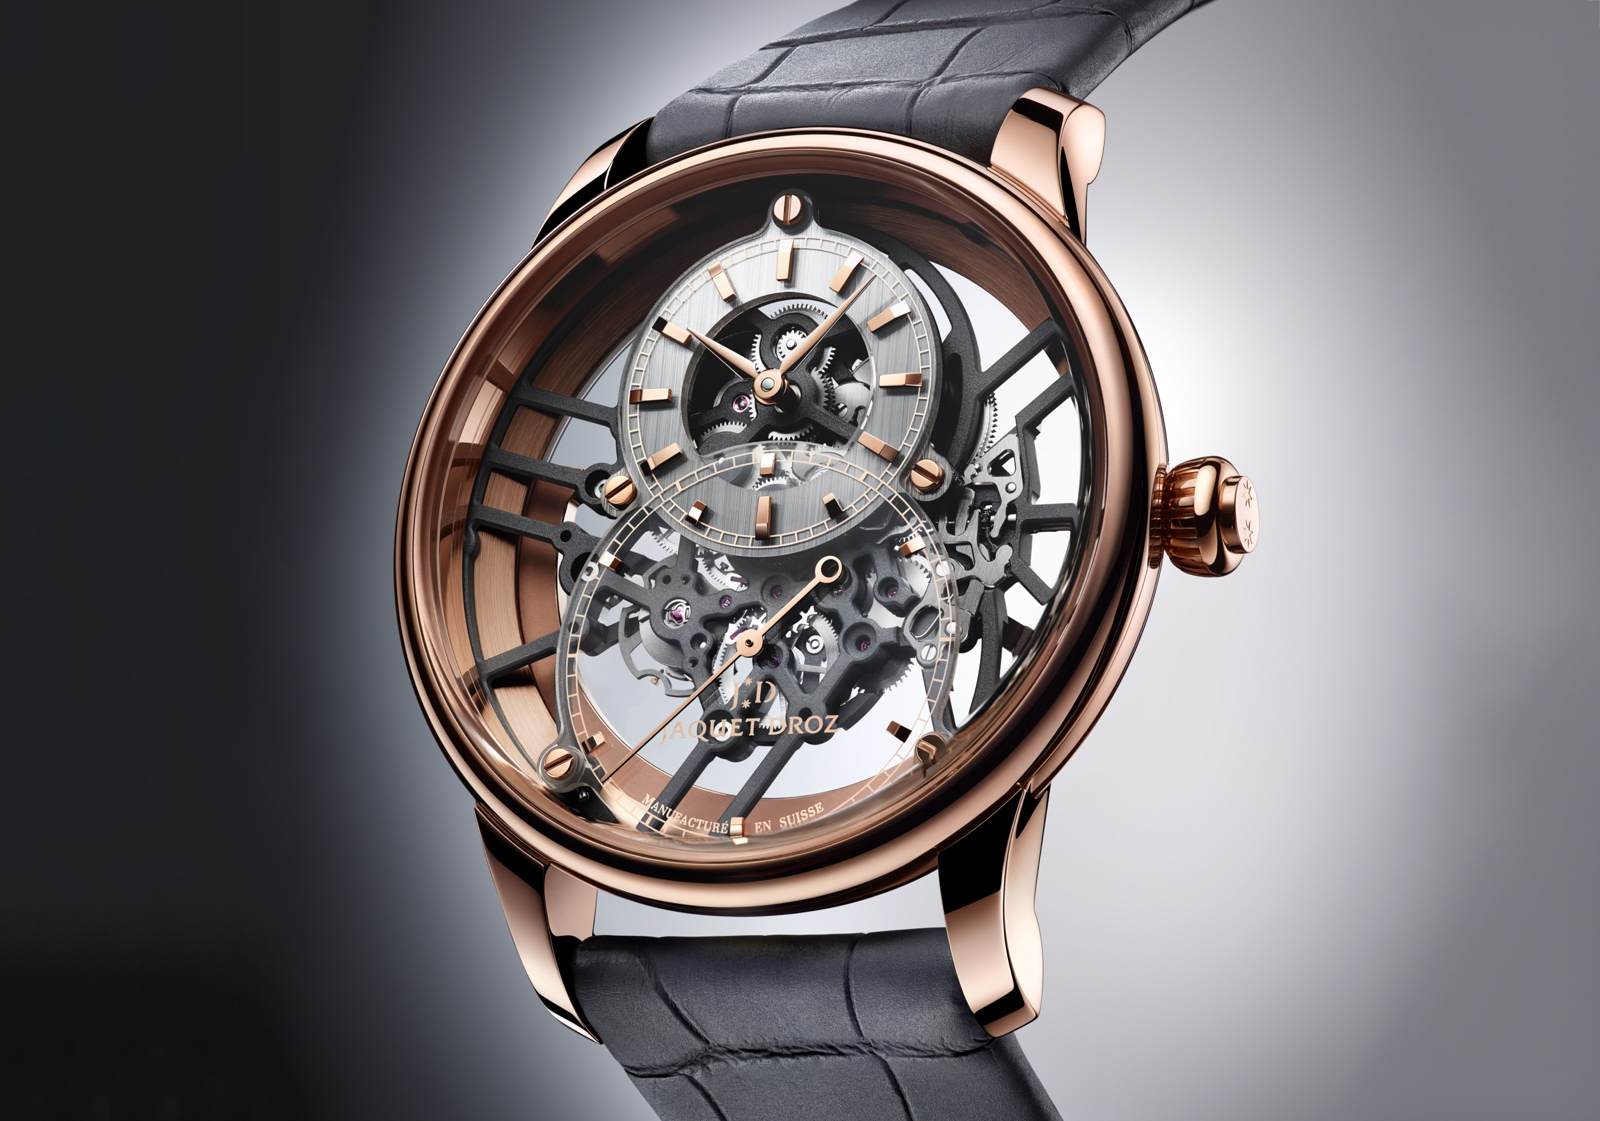 Jaquet Droz Grande Seconde Skelet-One 2020 - rose gold